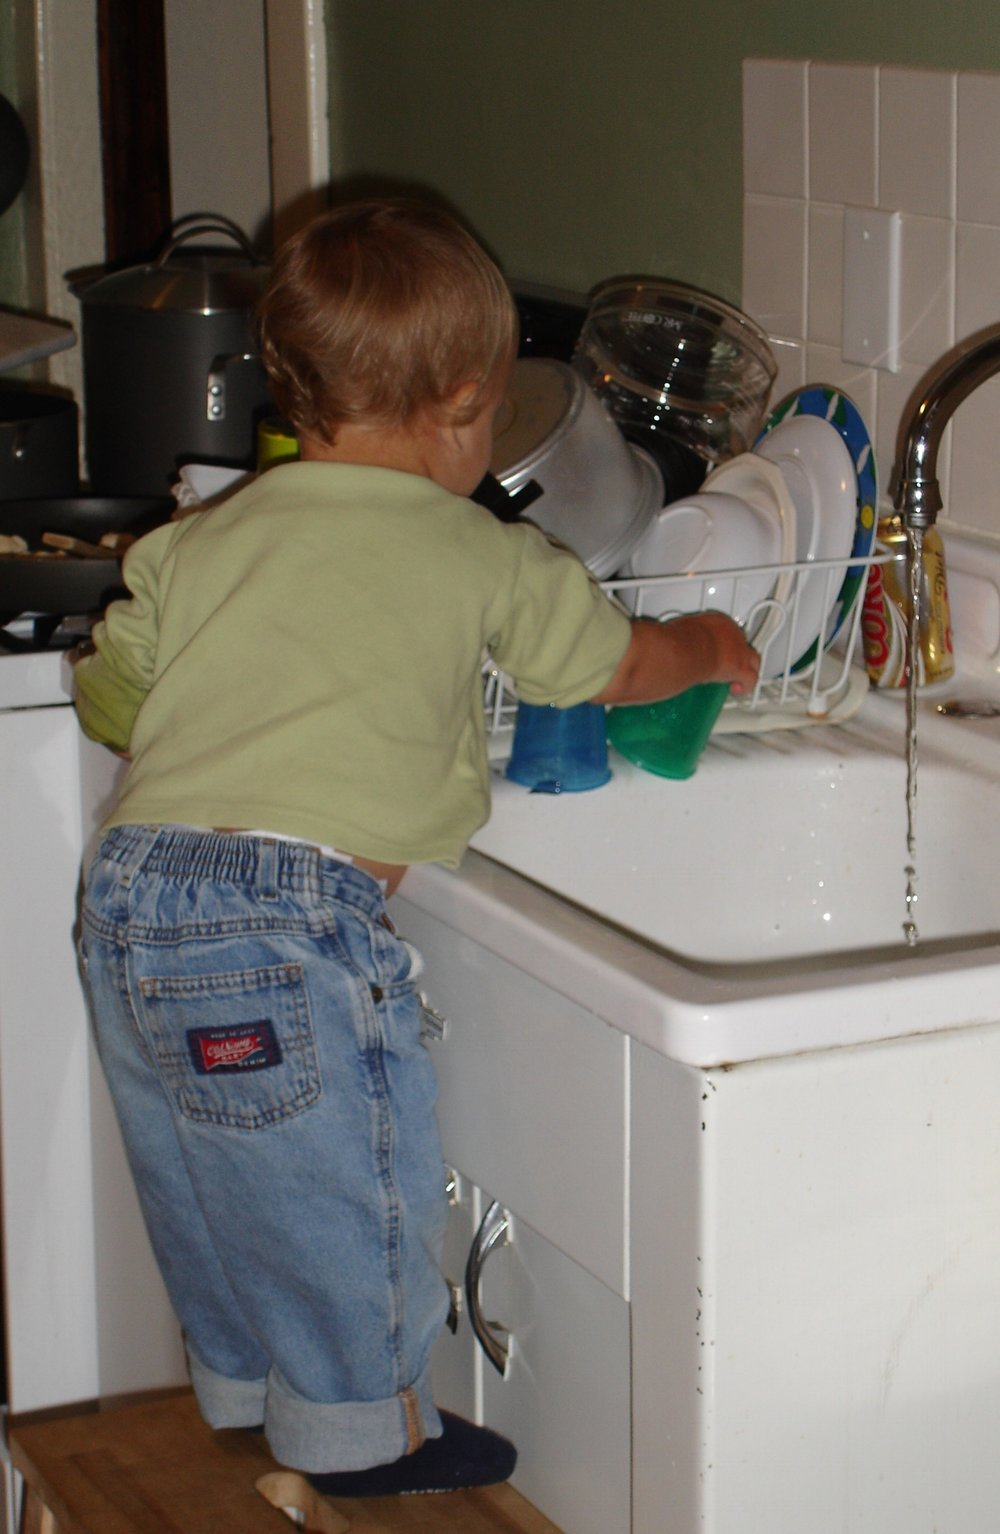 When dishes were fun...